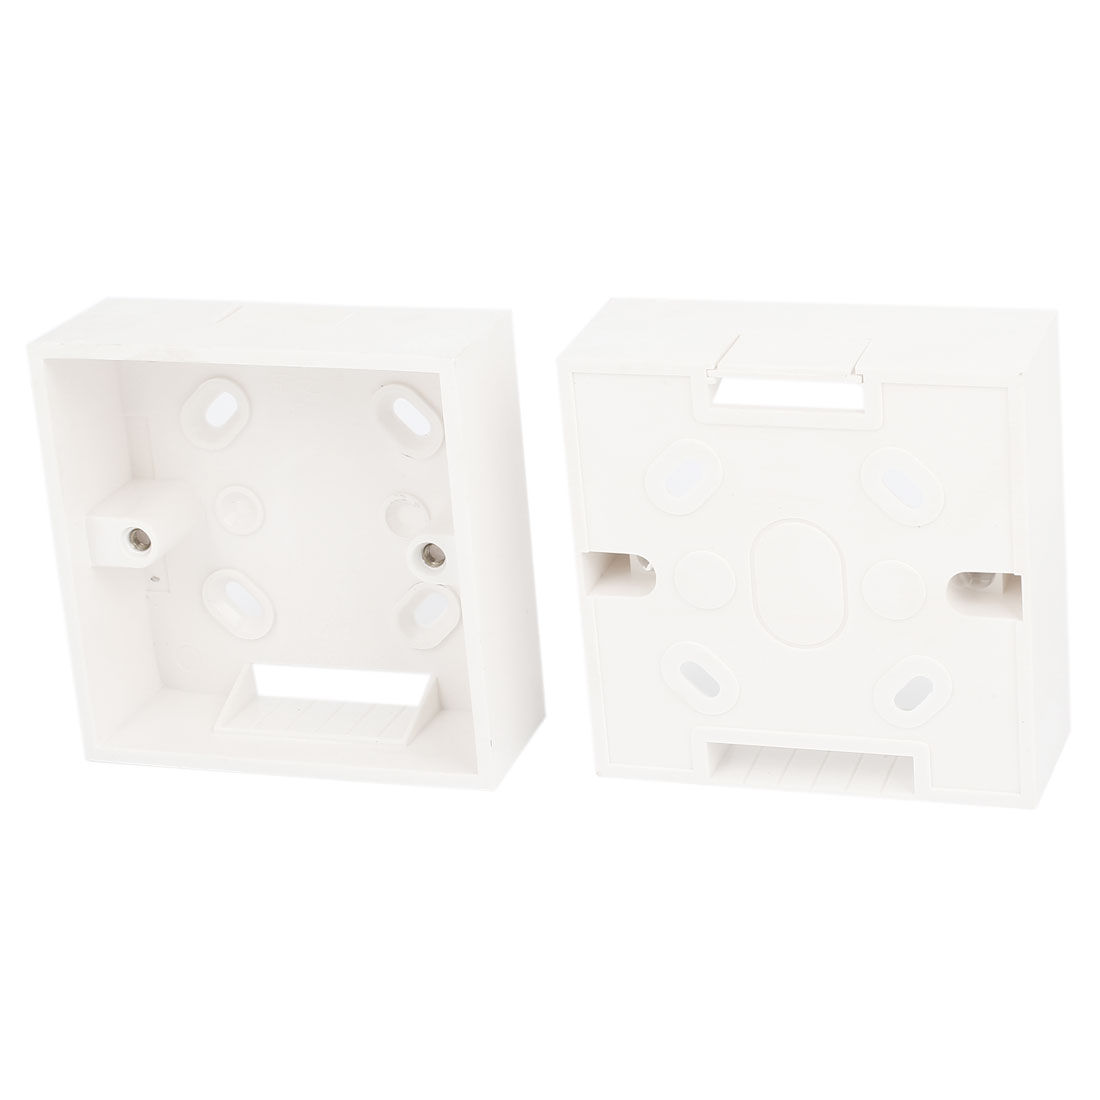 2PCS White PVC One Gang Mount Back Box for Wall Socket